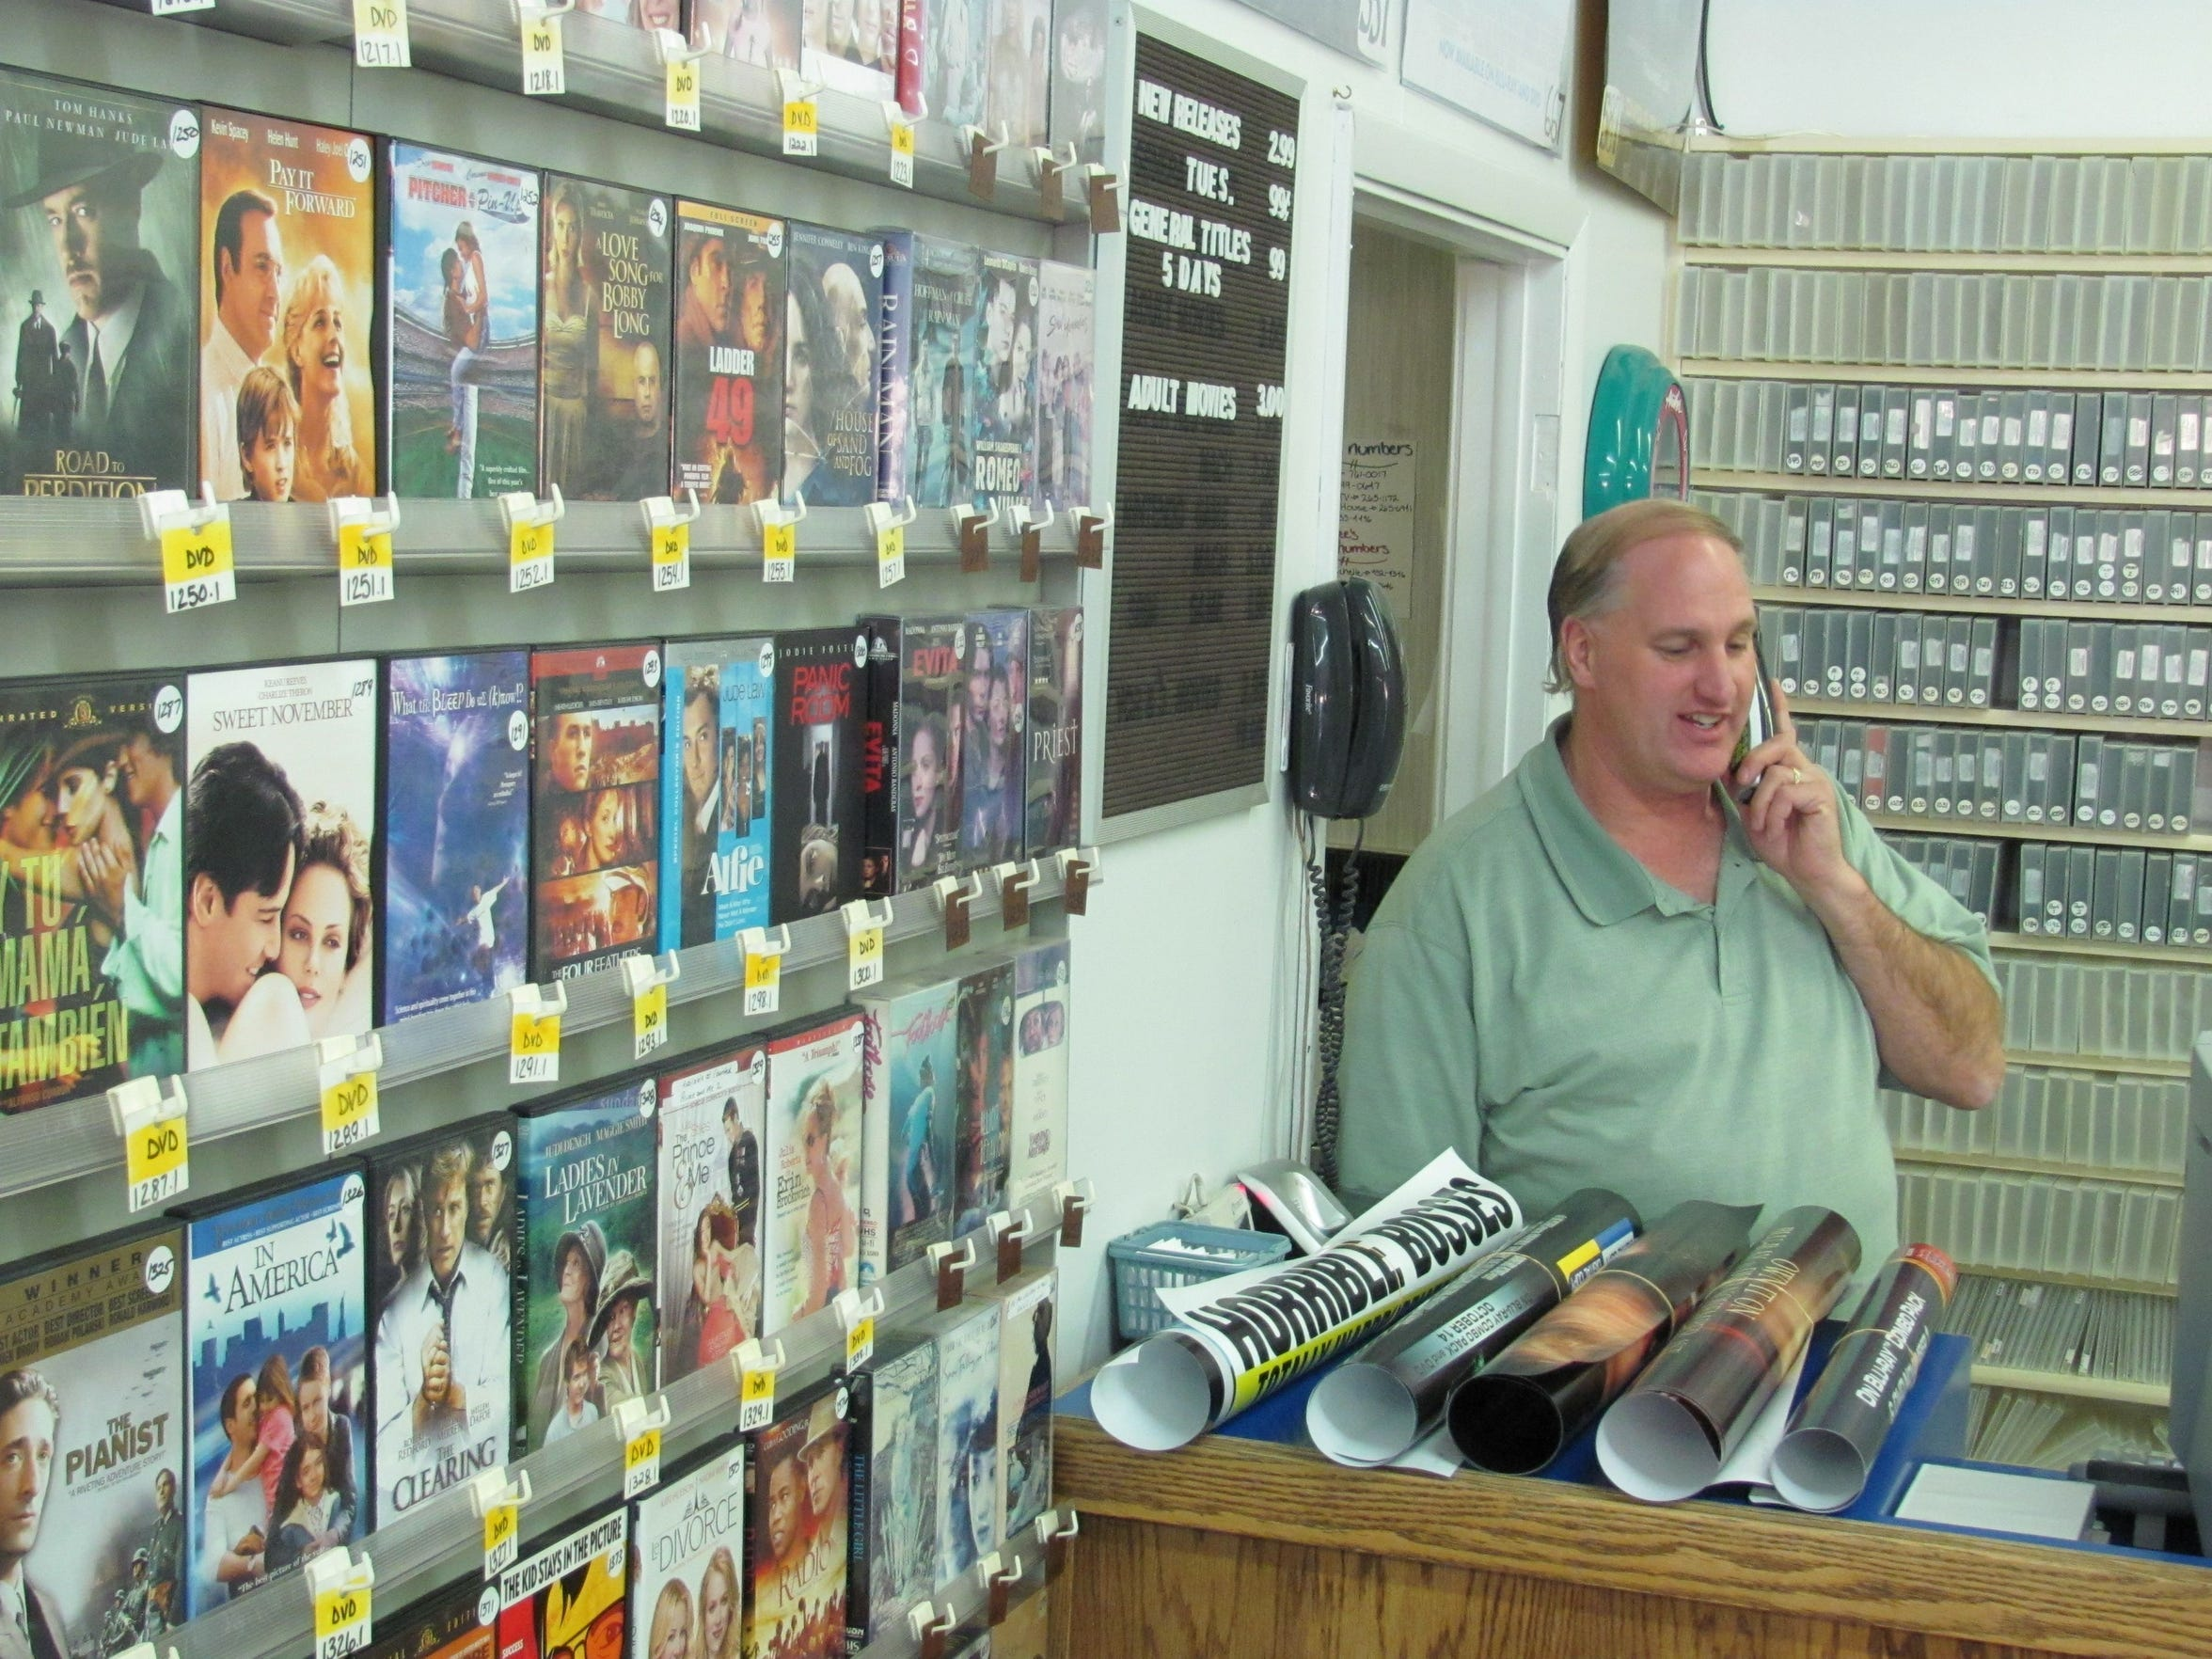 Paul Dockter is the longtime owner of One Stop Video,